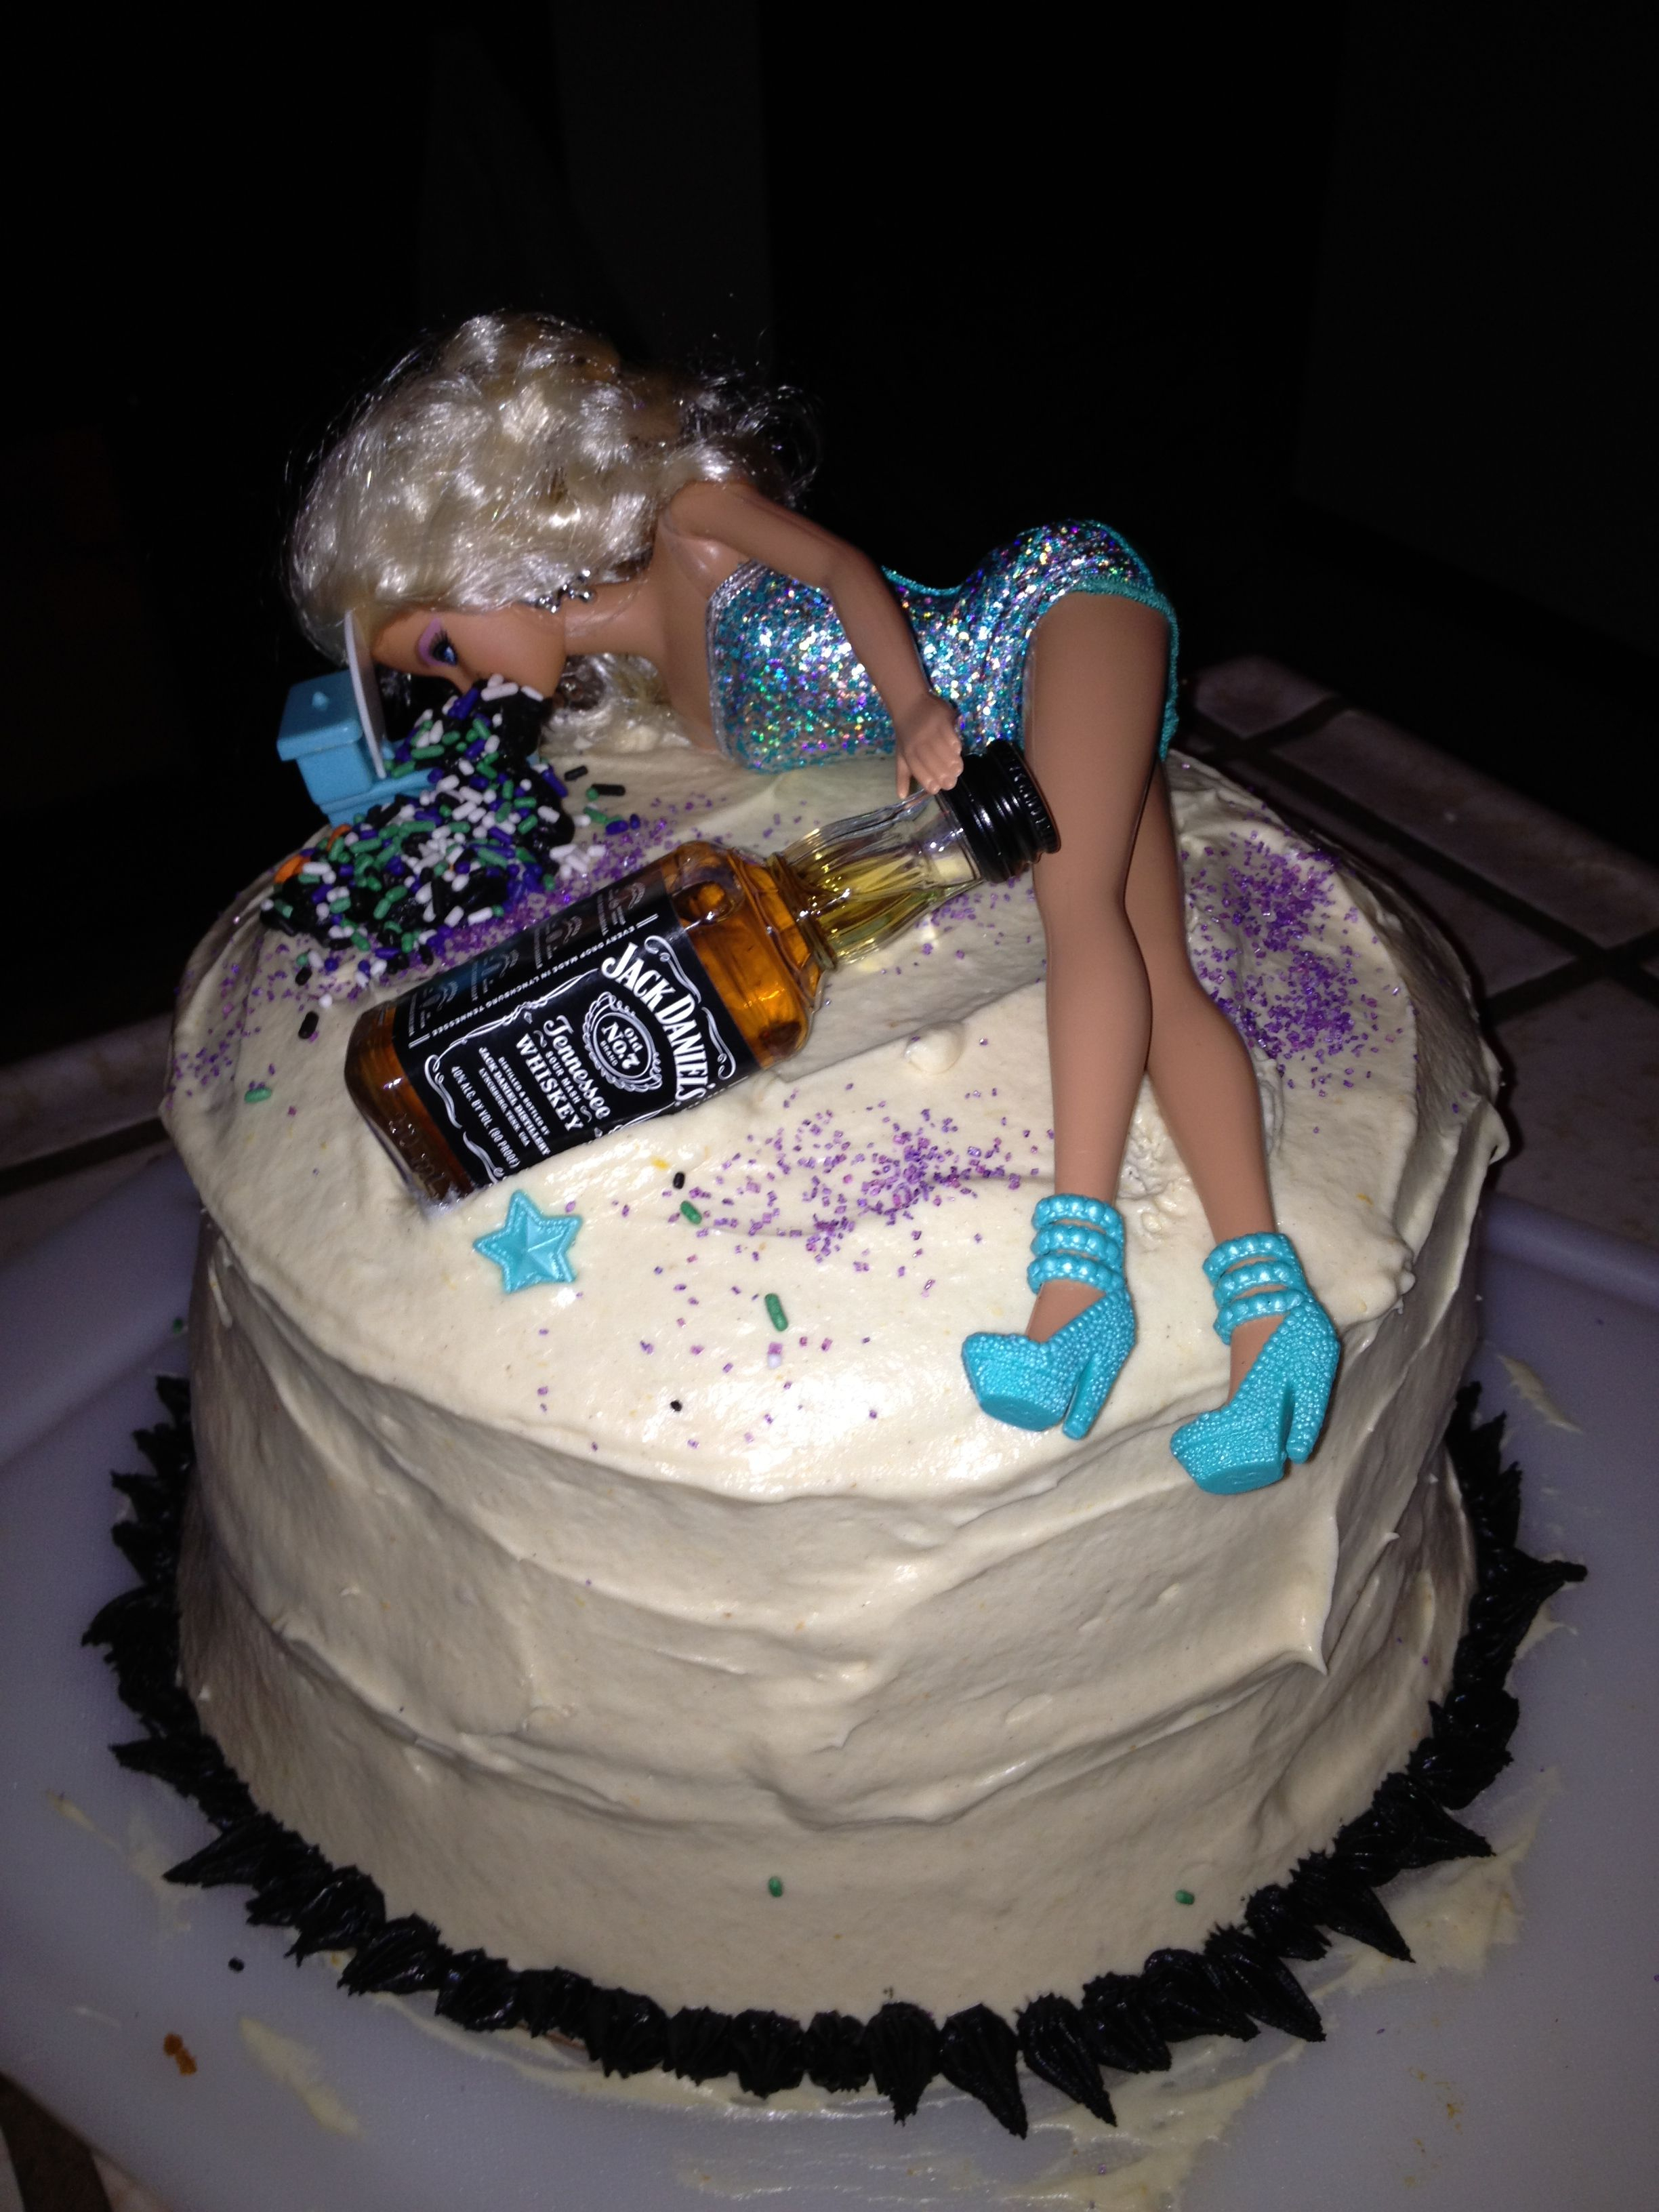 Funny Birthday Cakes For Adults My Birthday Cake October 19th Funny Birthday Cake Birthday Birijus Com